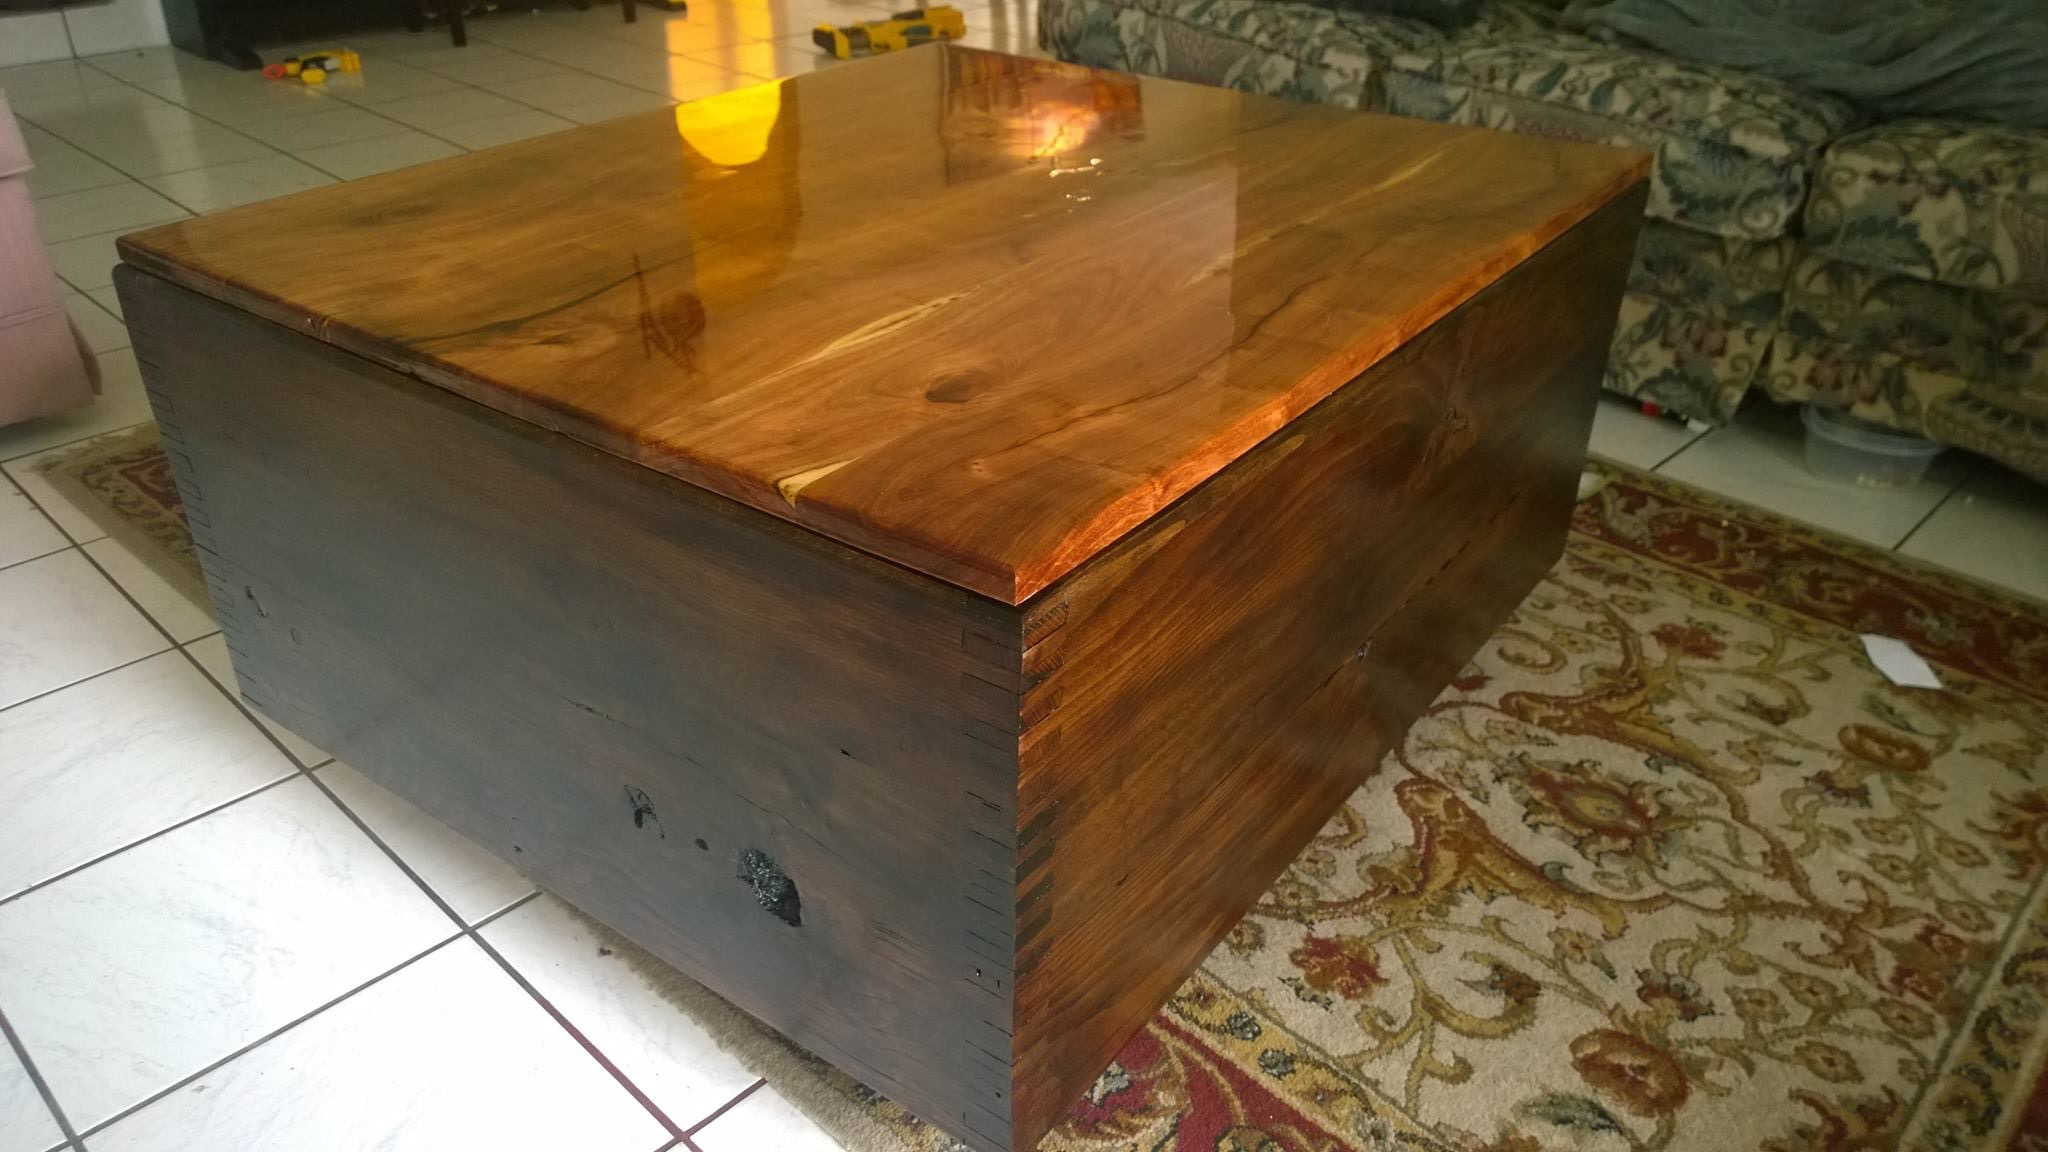 A table from mesquite and some junk oak I found